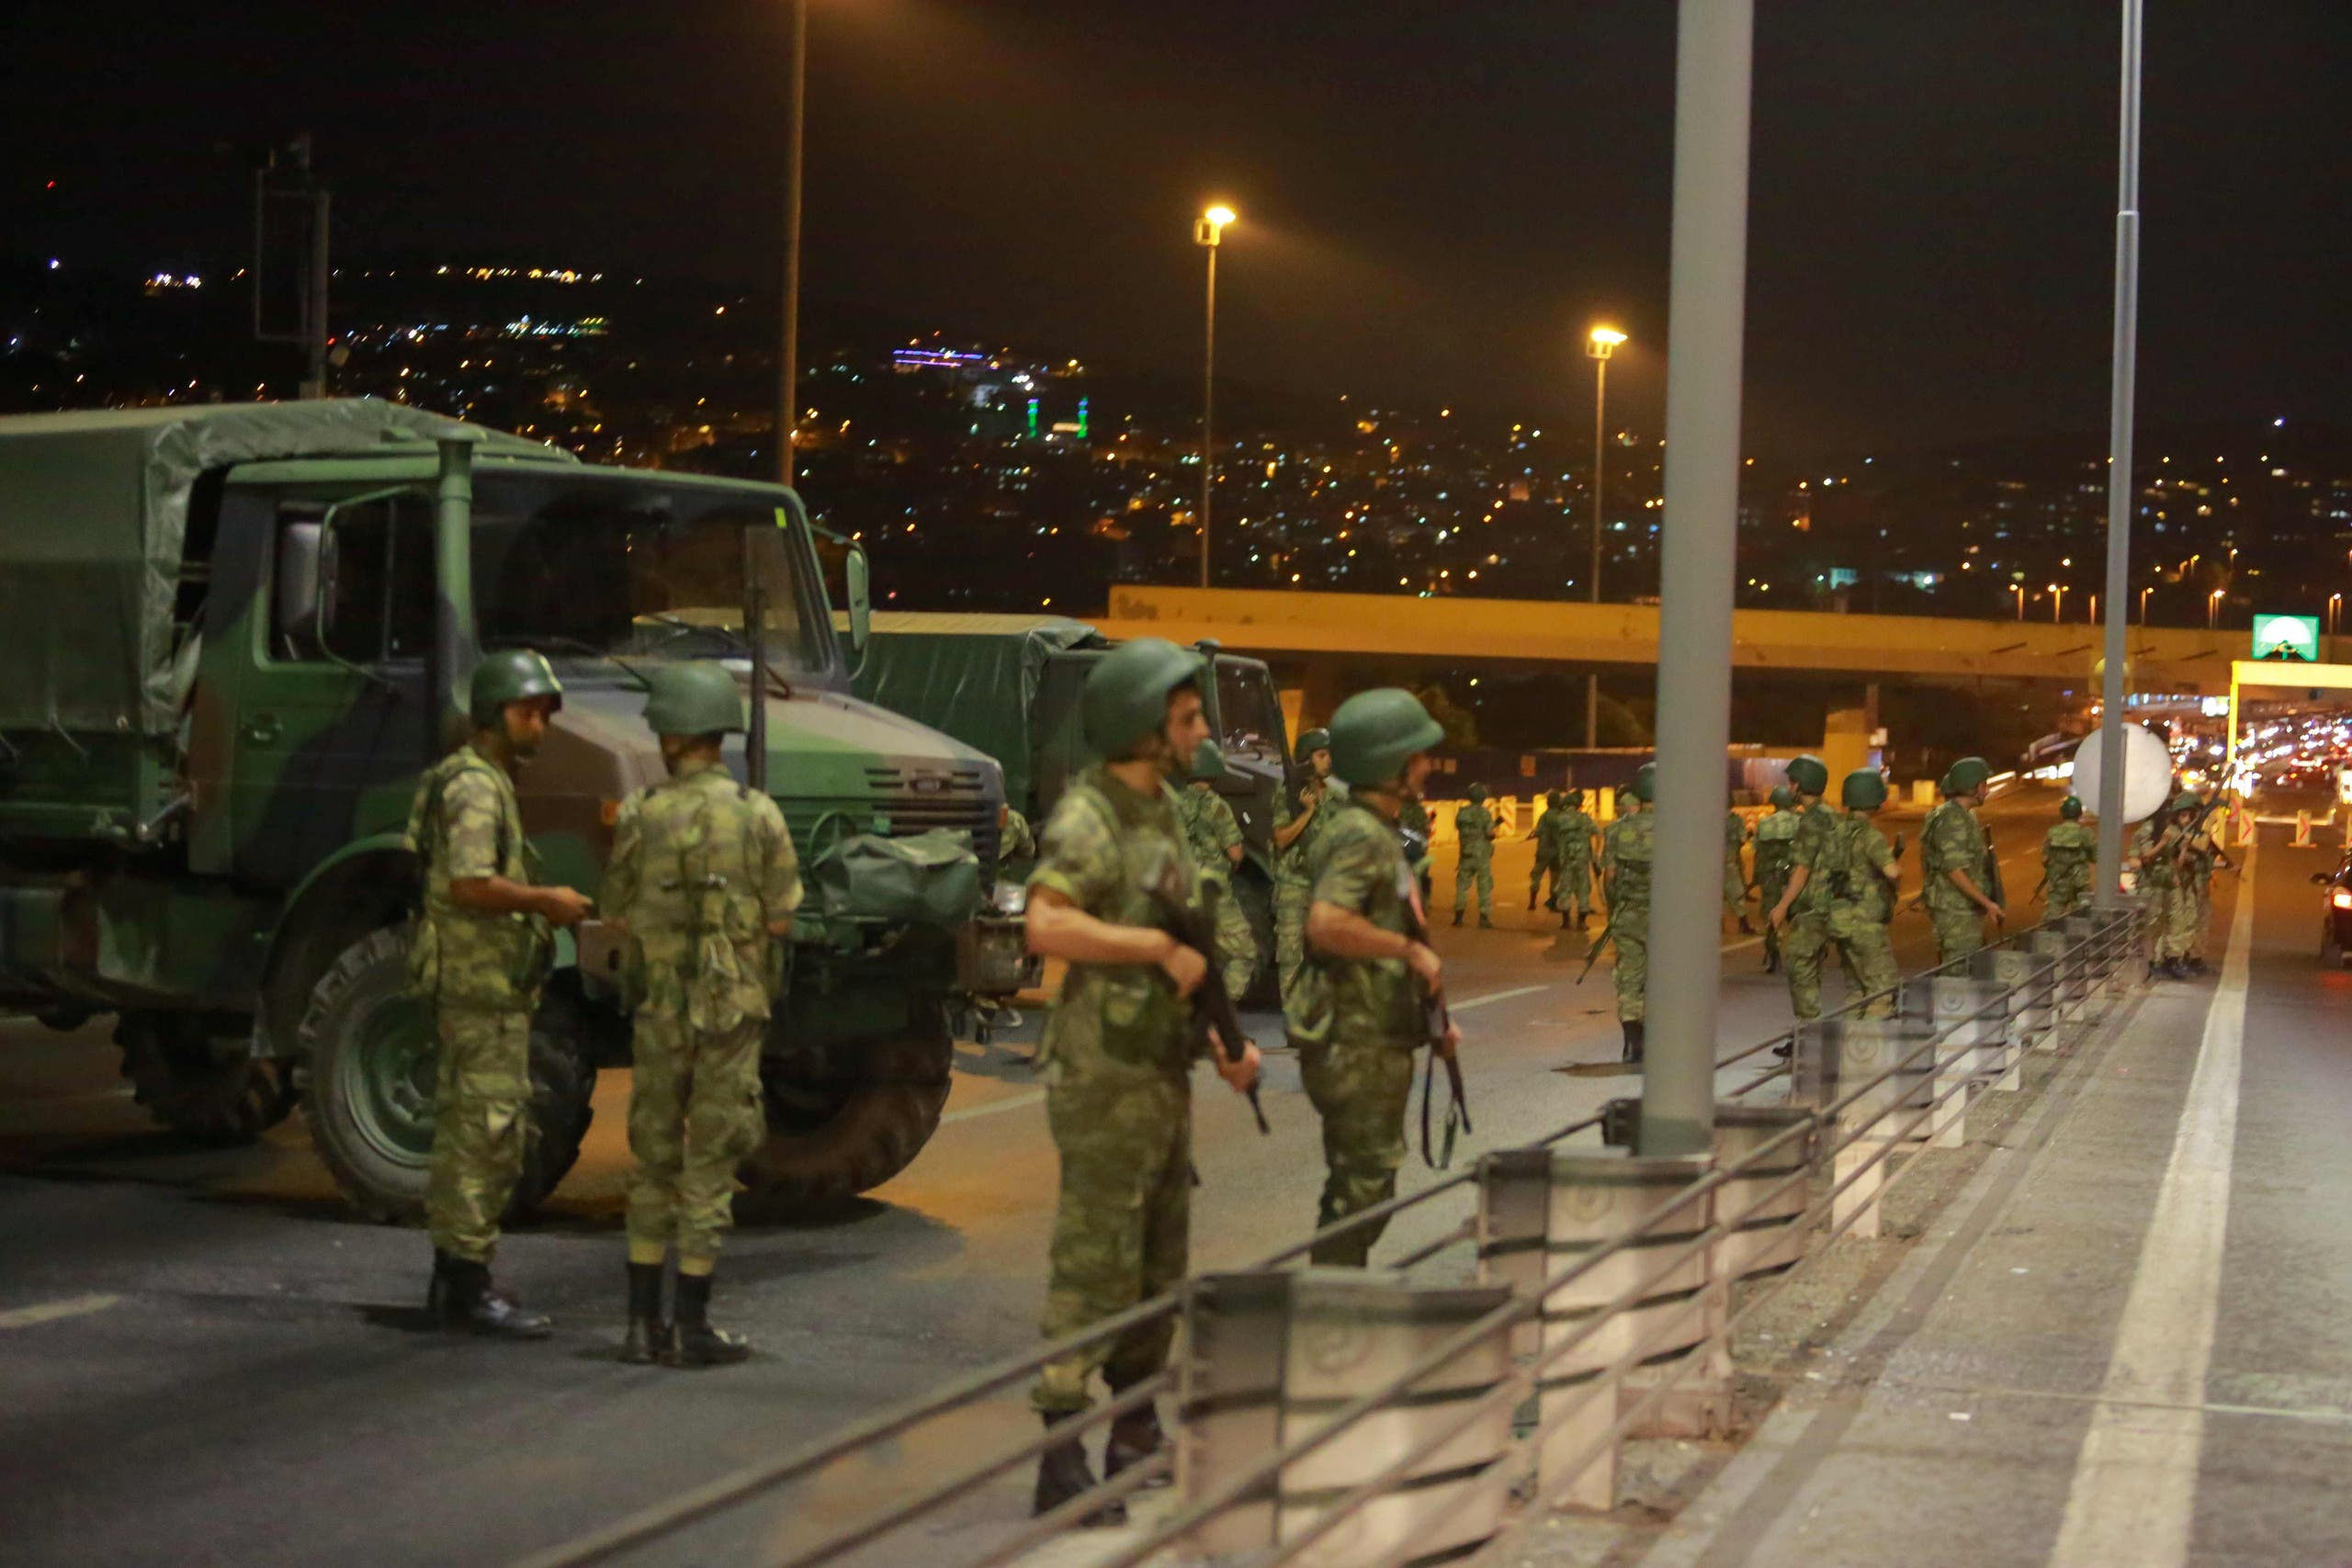 Turkish military block access to the Bosphorus bridge, which links the city's European and Asian sides, in Istanbul, Turkey, July 15, 2016. (Reuters)